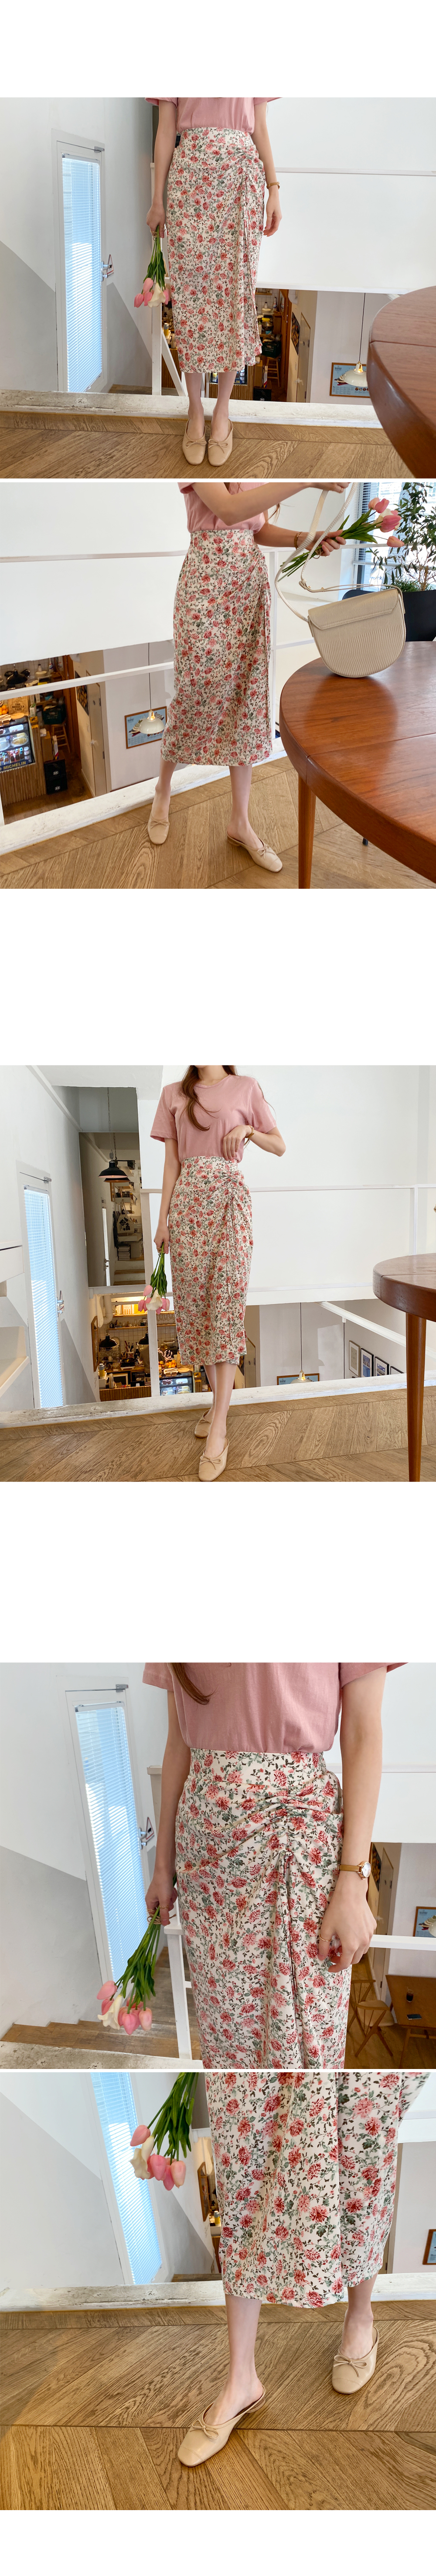 Refreshing spring fragrance shirring long skirt